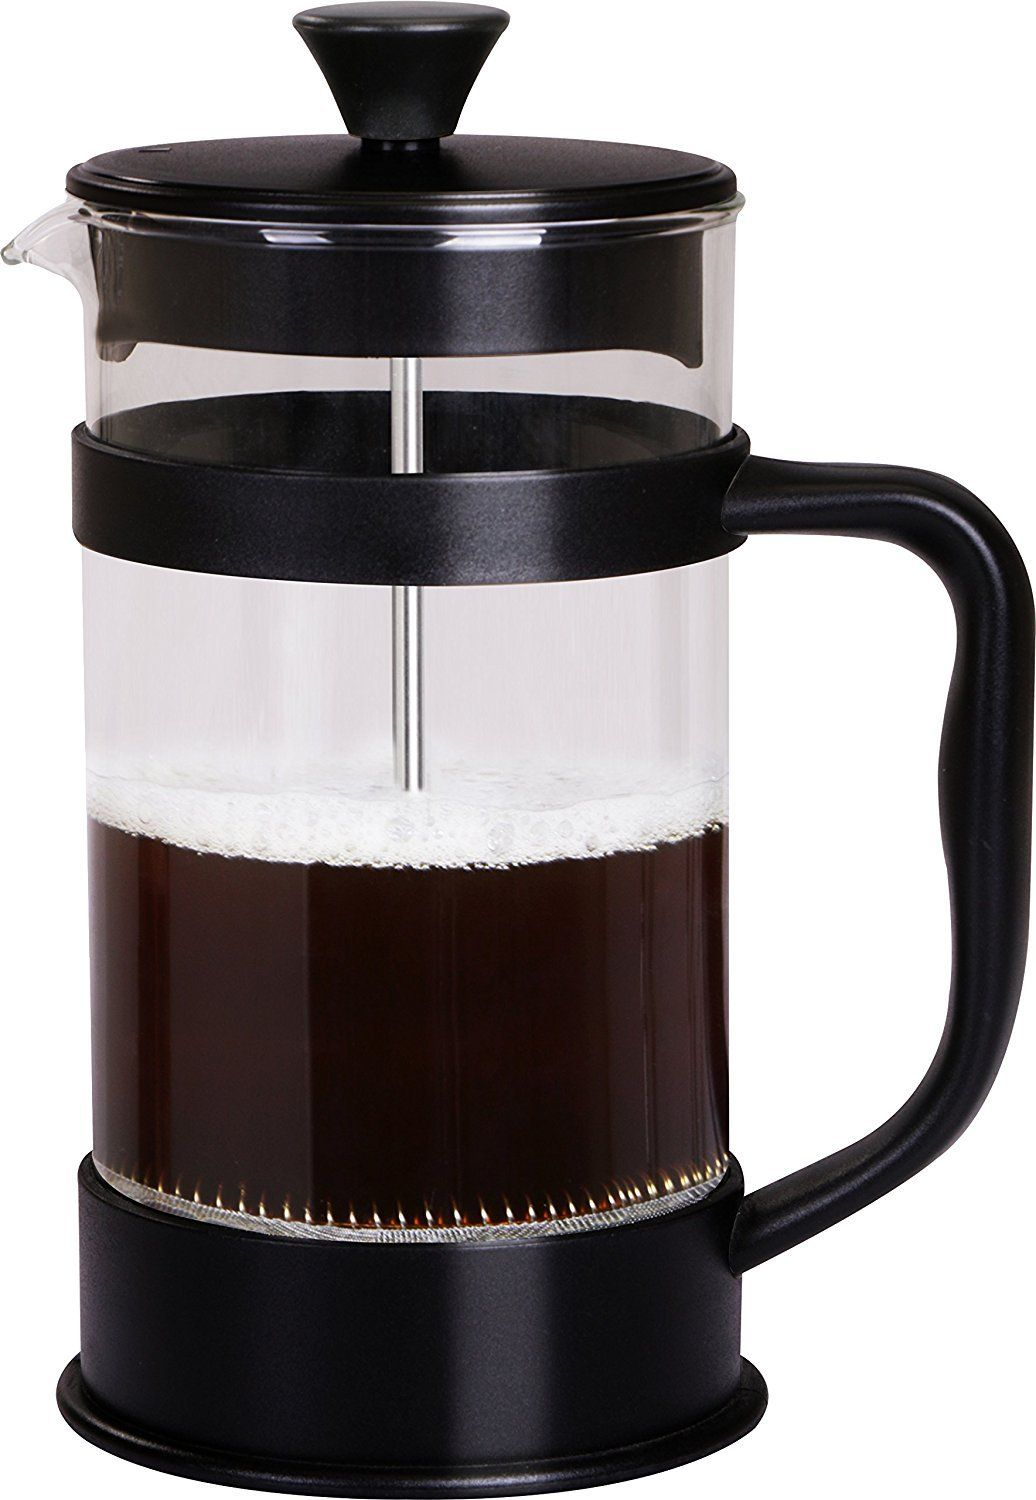 French Coffee Press 34 Oz Espresso And Tea Maker With Triple Filters Stainless Steel Plunger And Heat Coffee Press French Coffee Stainless Steel French Press